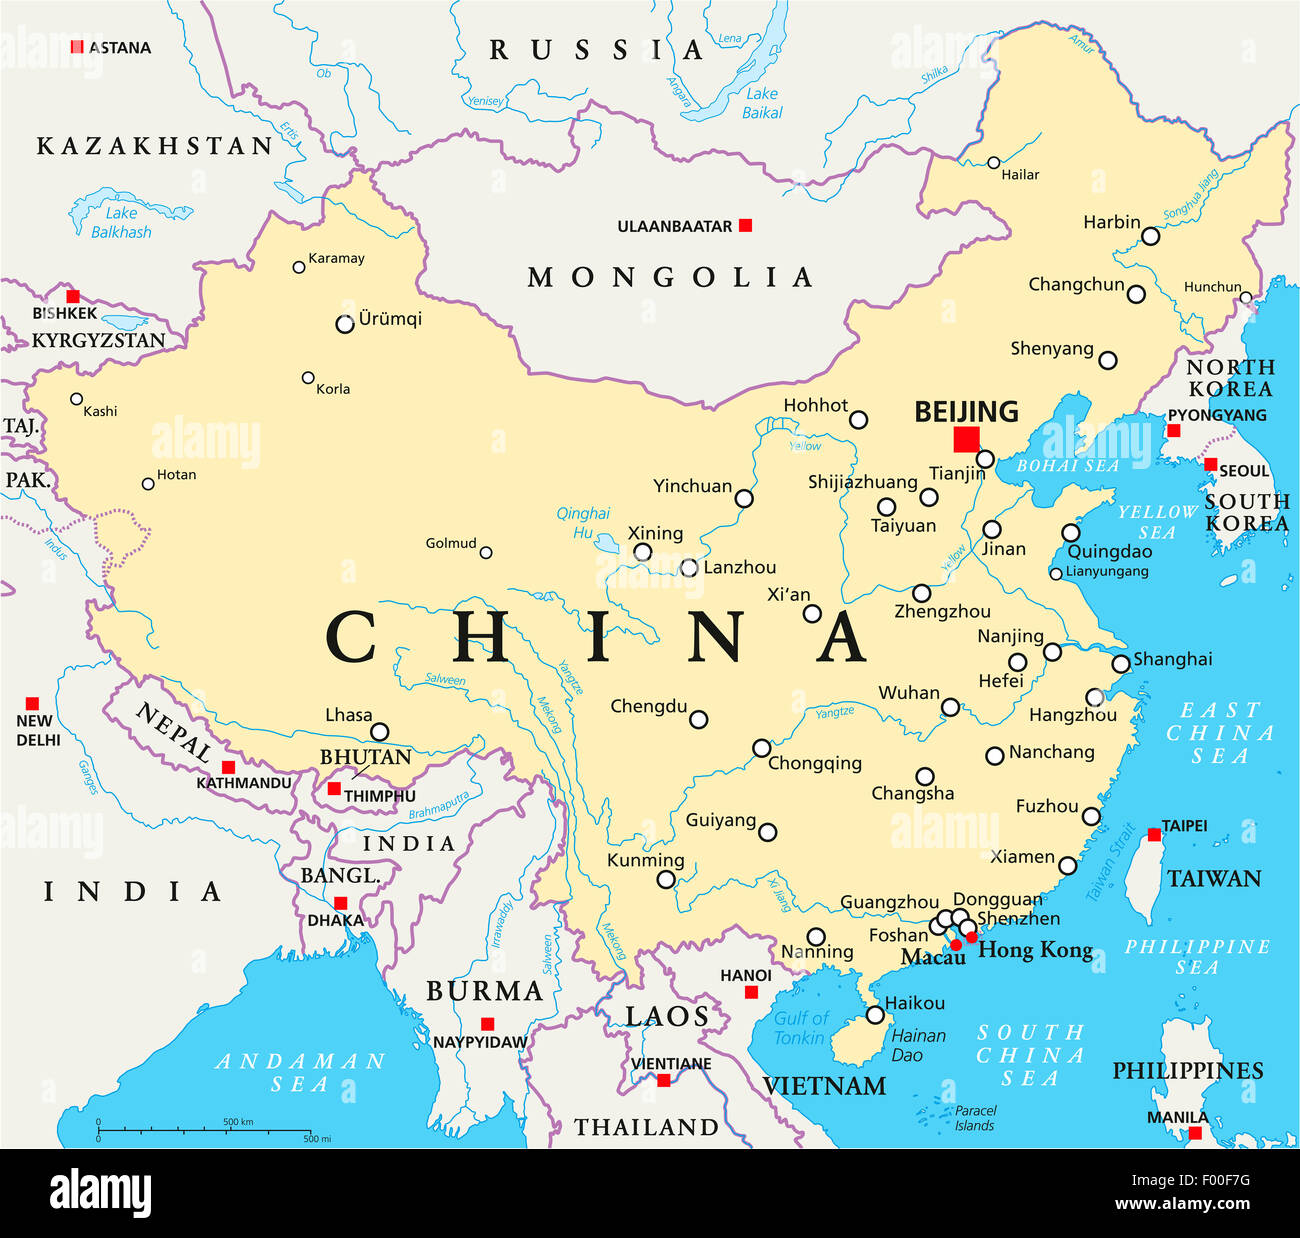 China Political Map With Capital Beijing National Borders